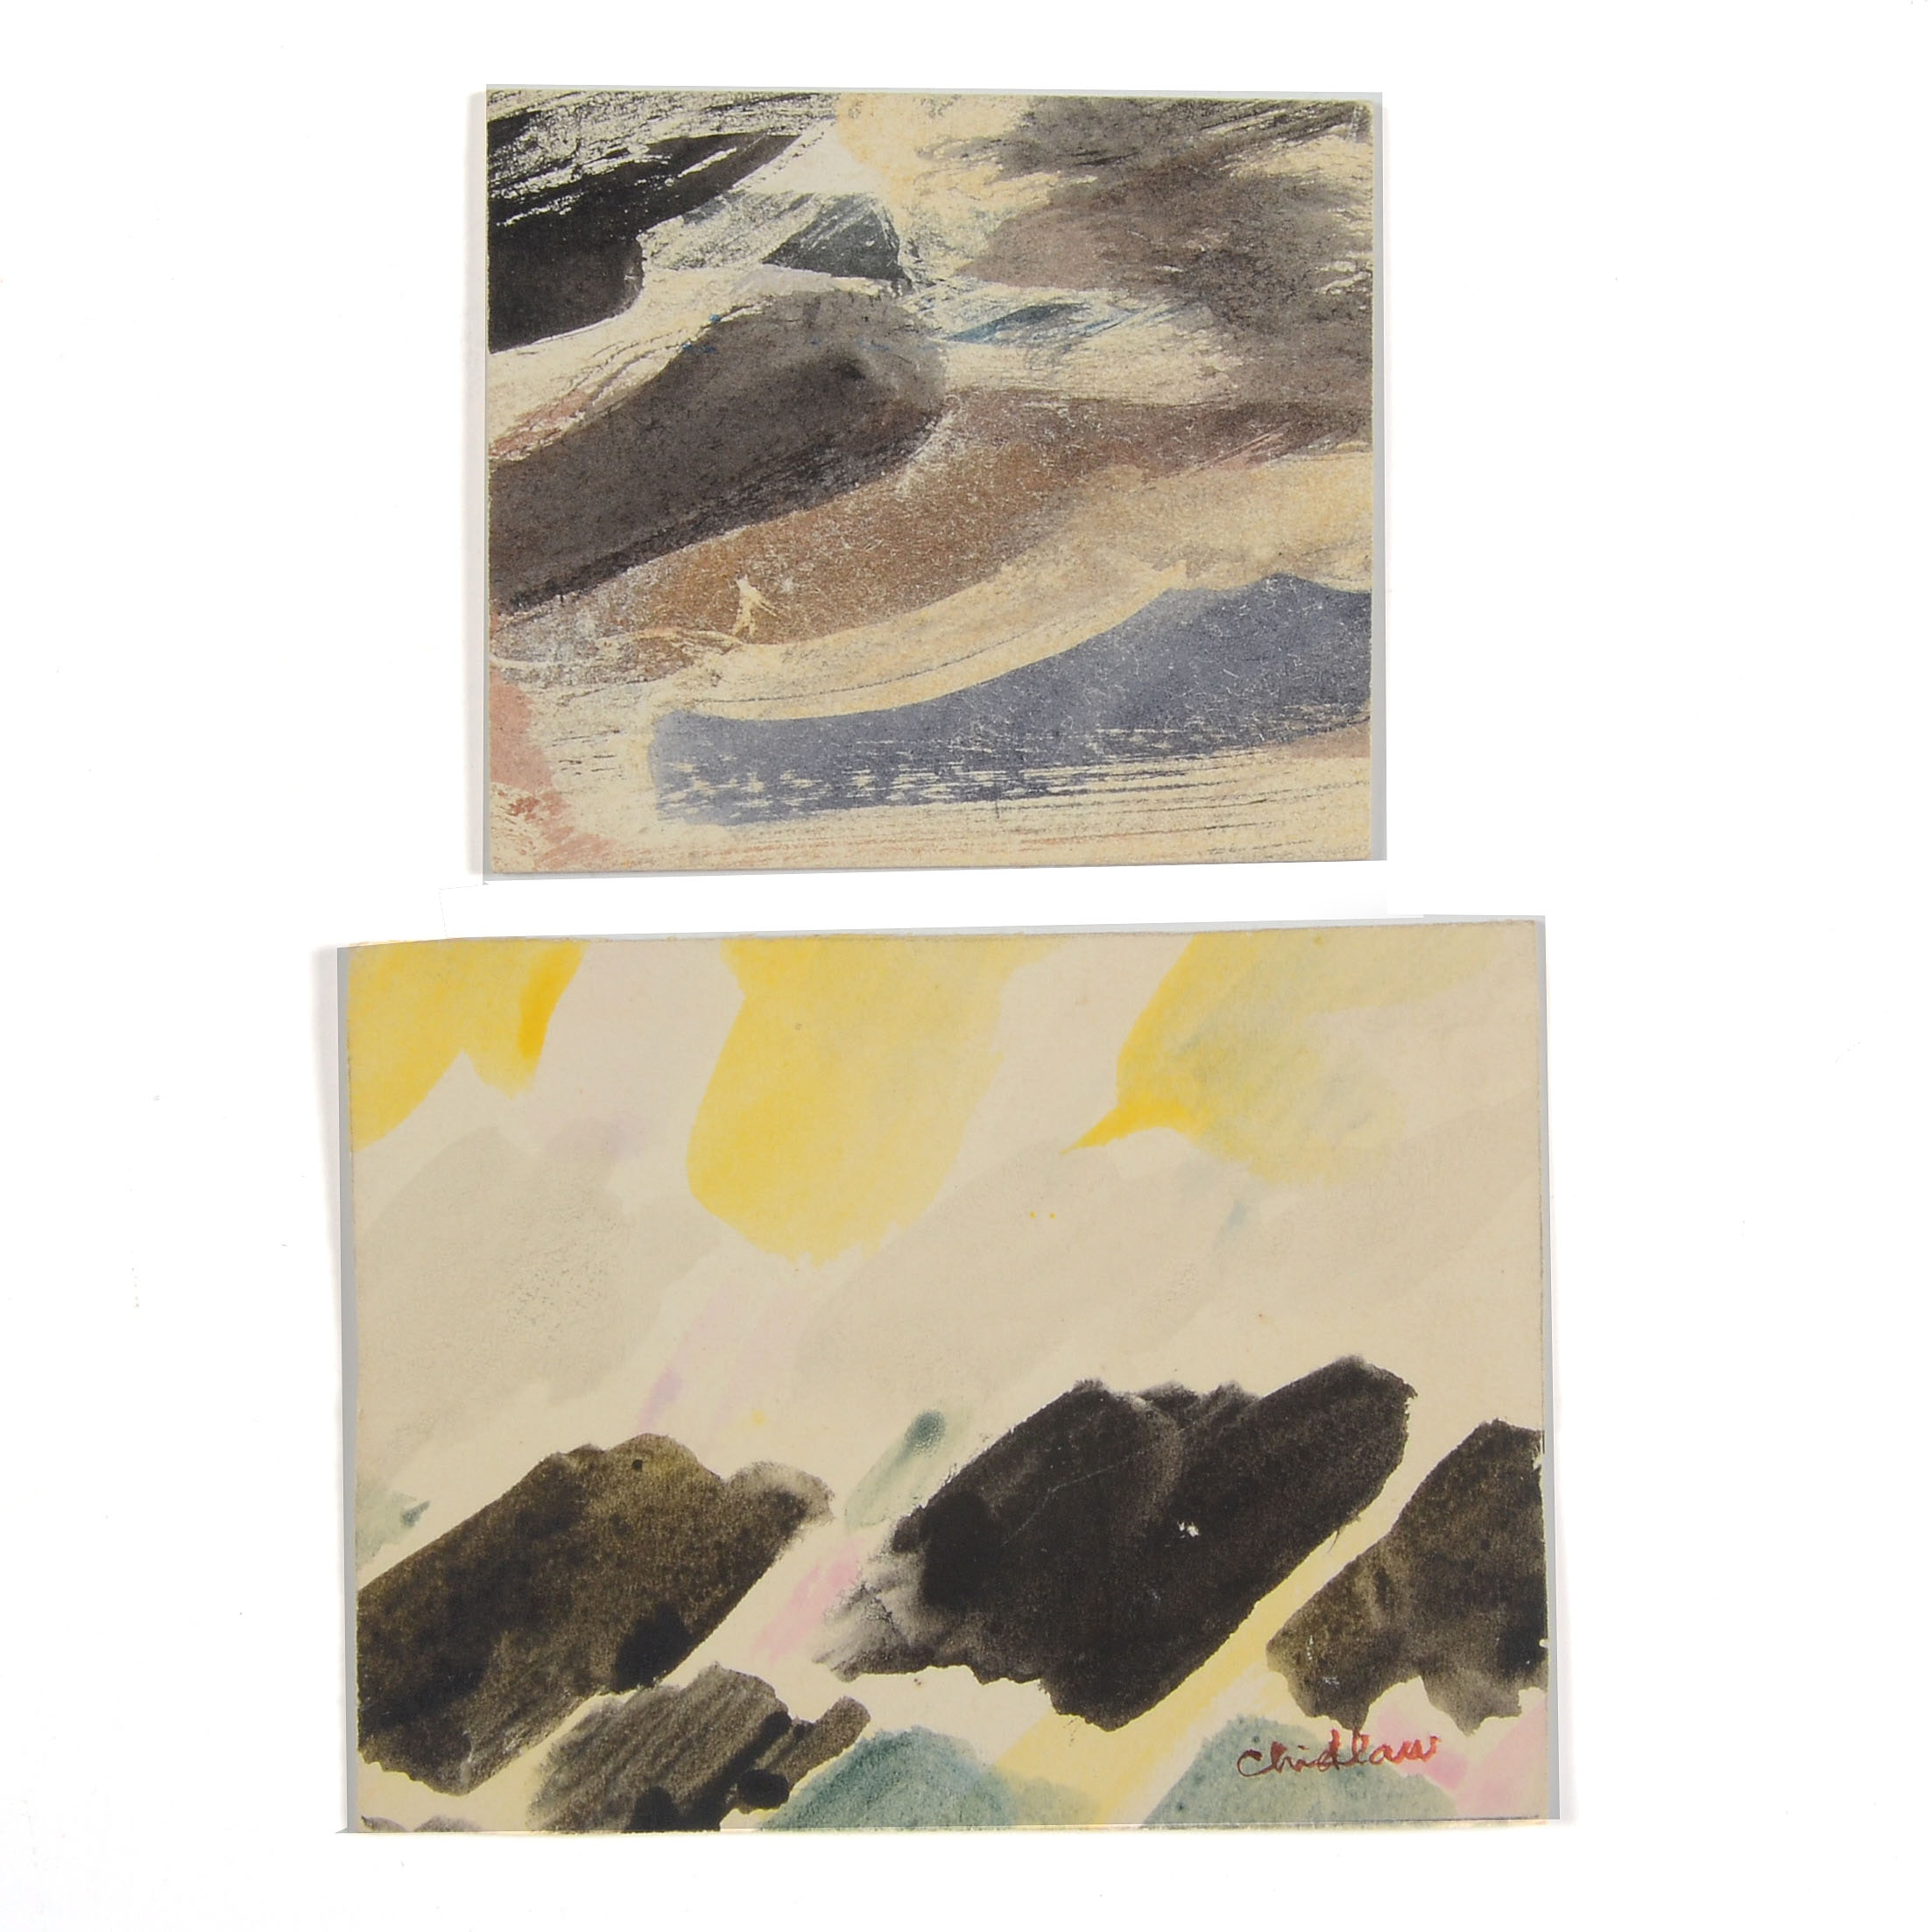 Paul Childlaw Two Miniature Abstract Paintings on Paperboard